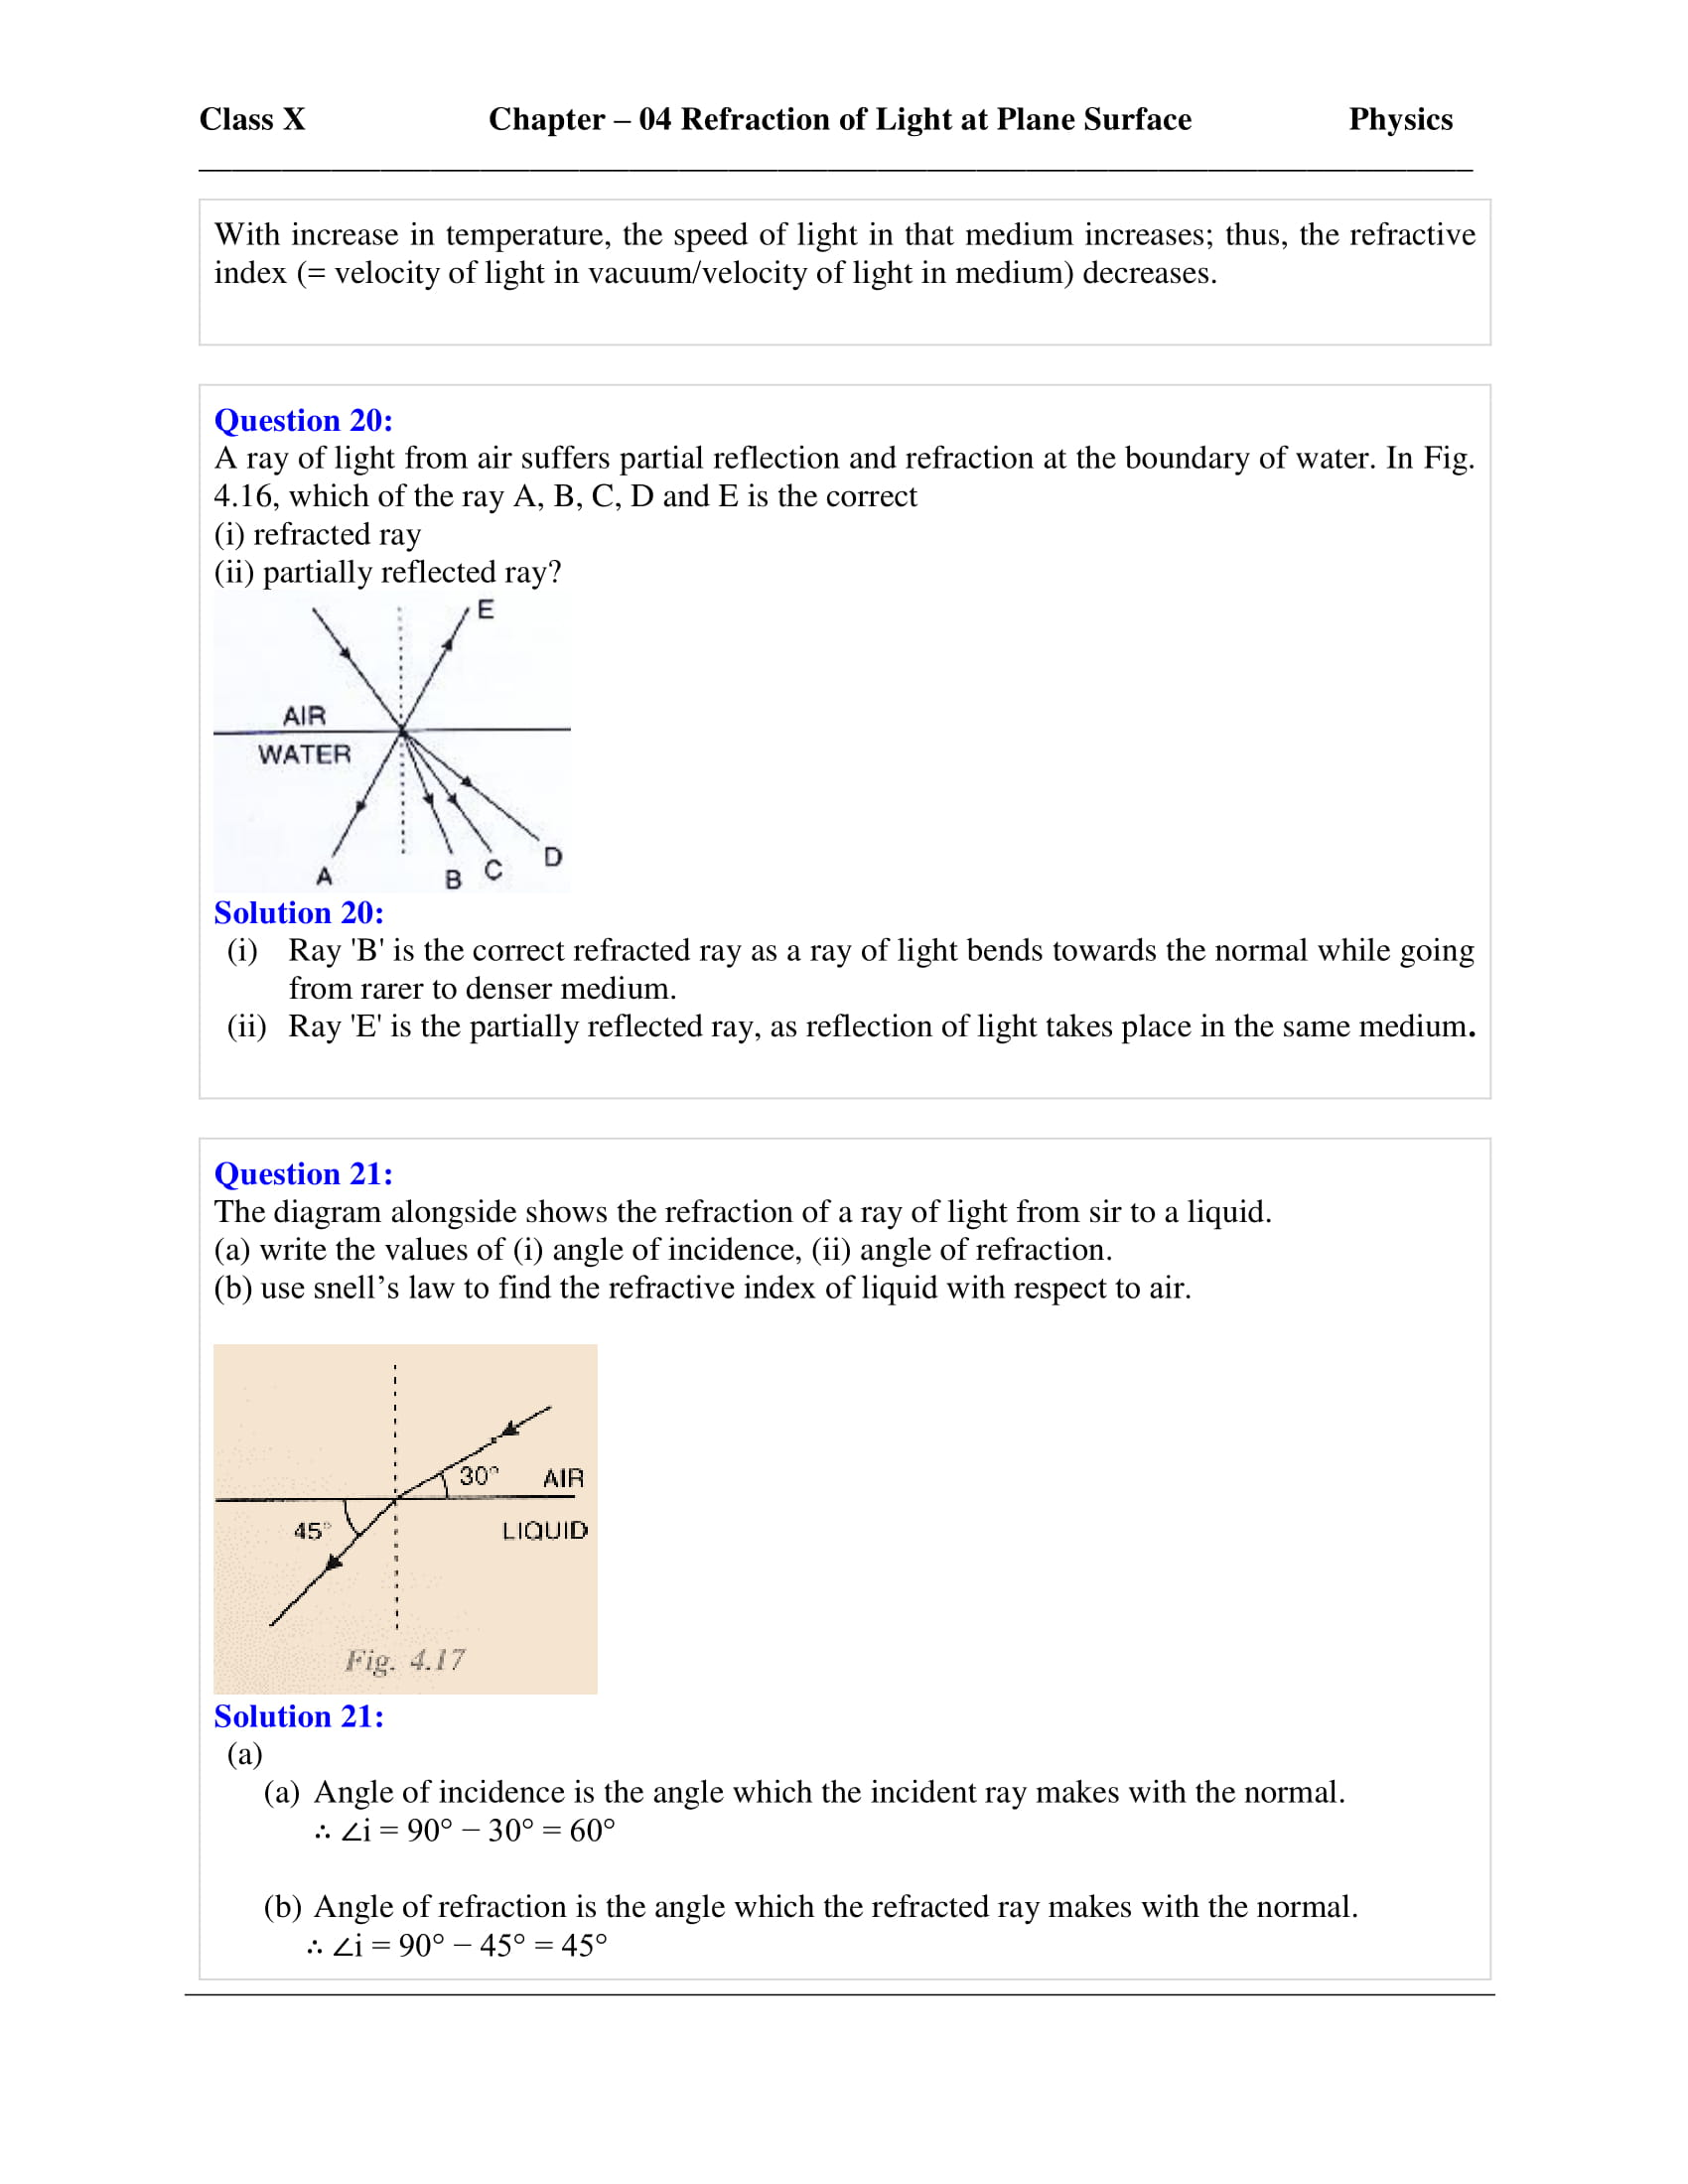 icse-selina-physics-solutions-class-10-chapter-4-refraction-of-light-at-plane-surfaces-06